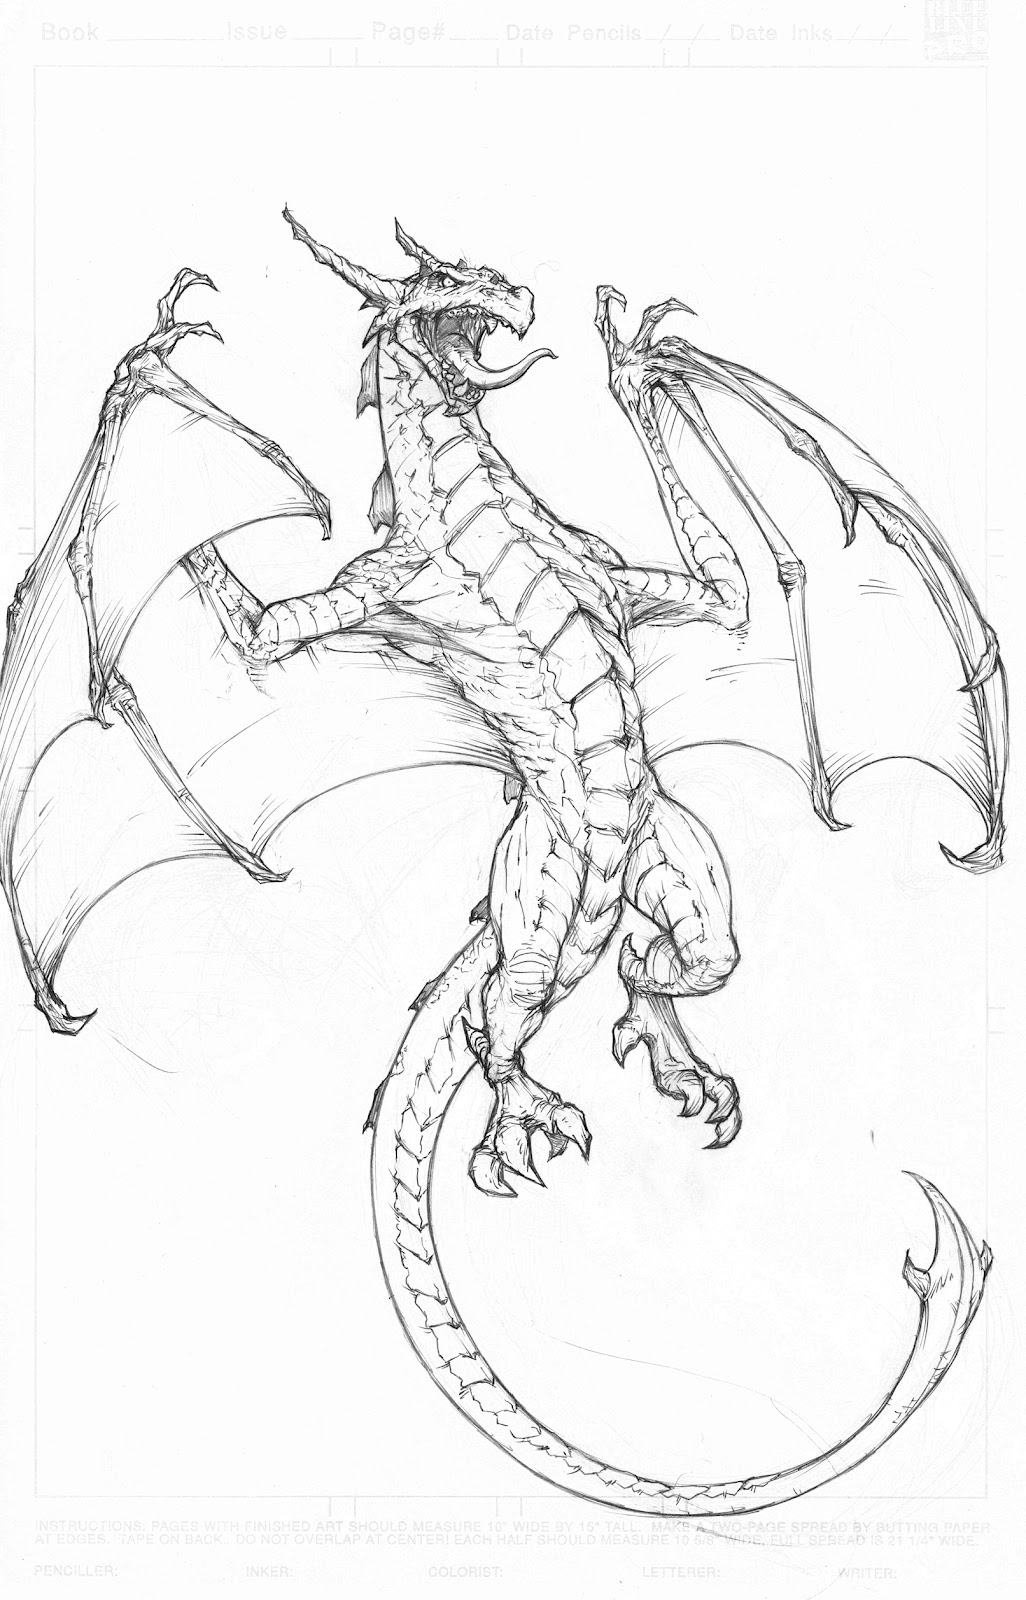 Cool drawings quotes links for Cool drawing sites